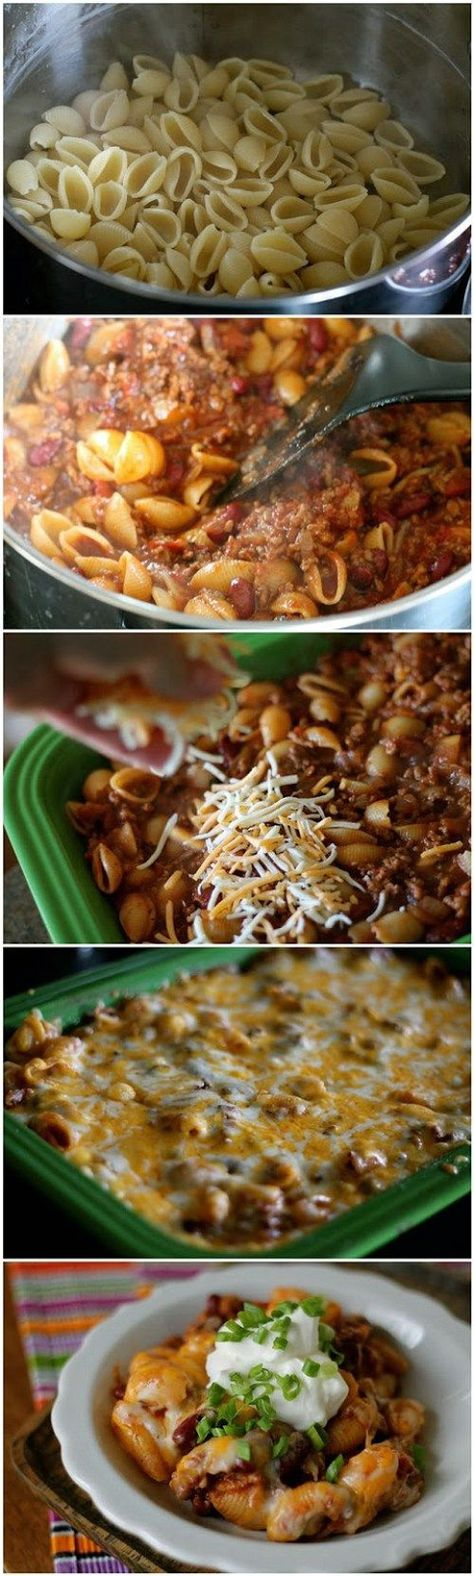 Chili Pasta Bake. Perfect for chilly weather ;)